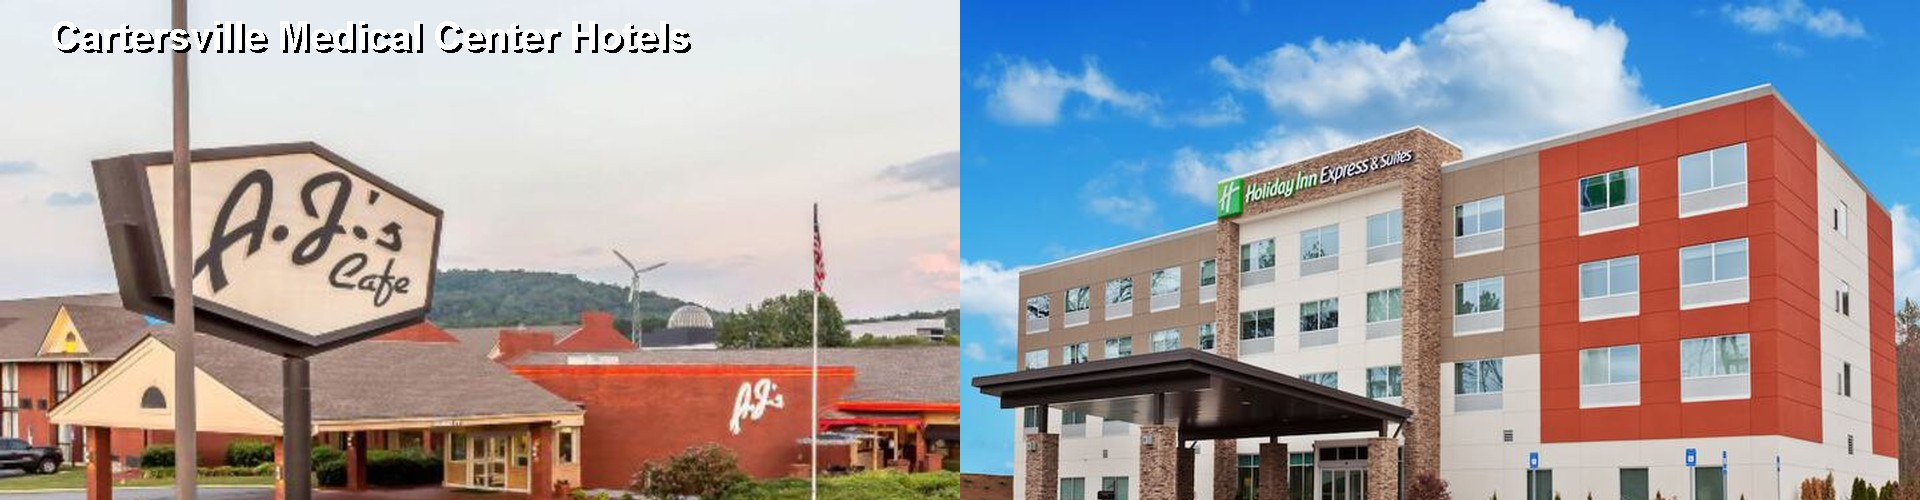 5 Best Hotels near Cartersville Medical Center